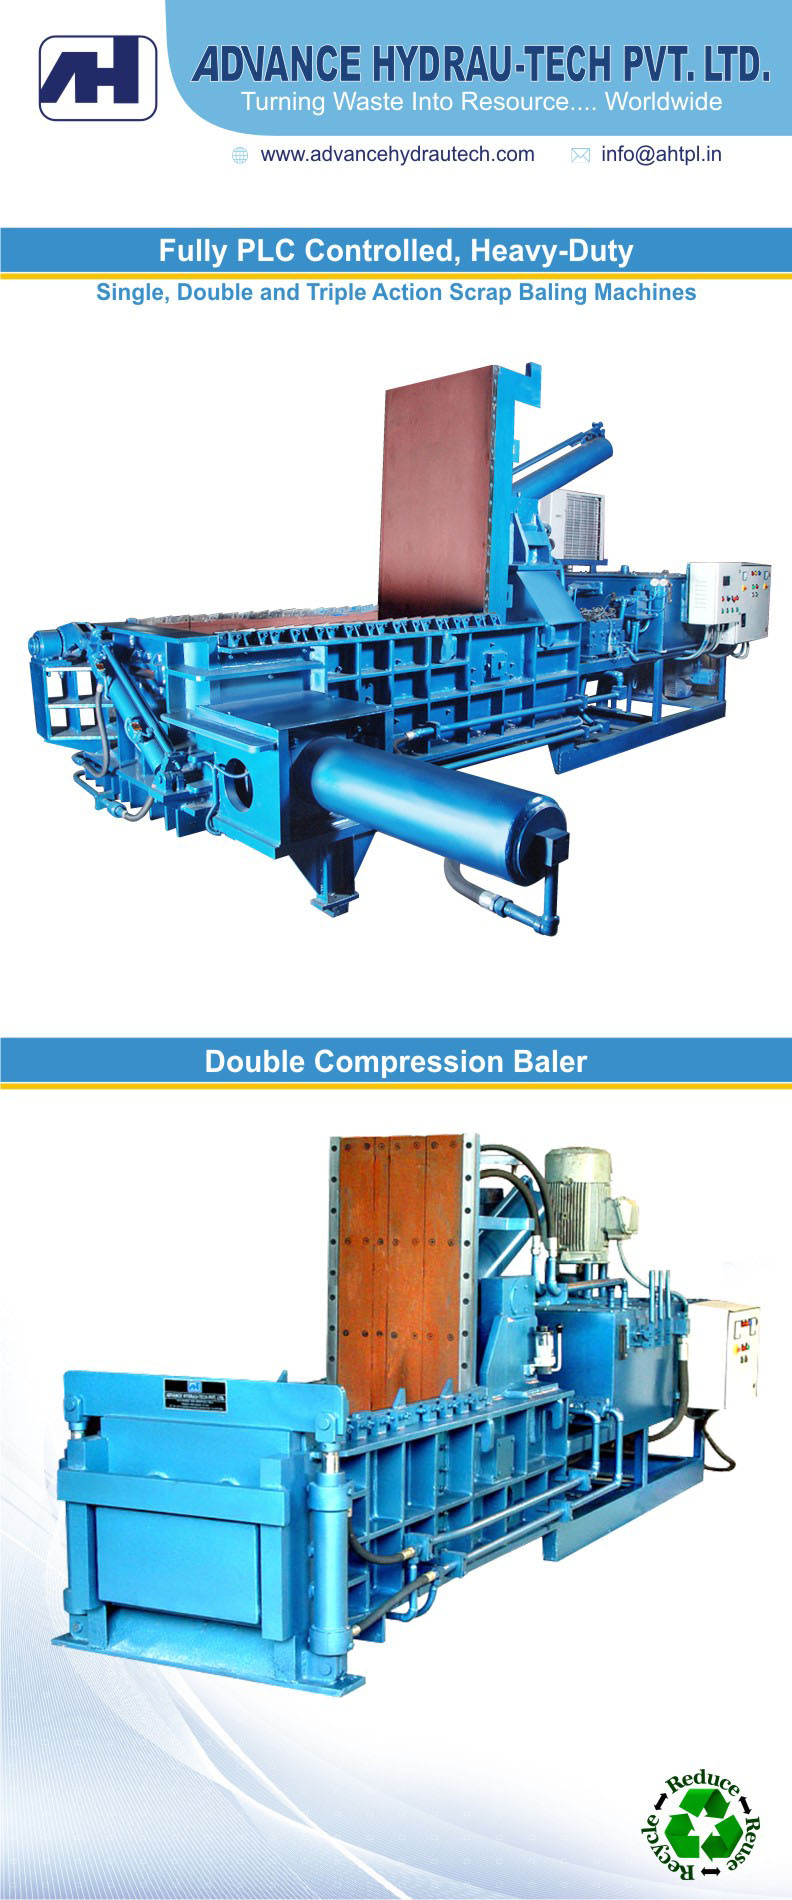 High Density Baling Solutions Available in Wide Range of